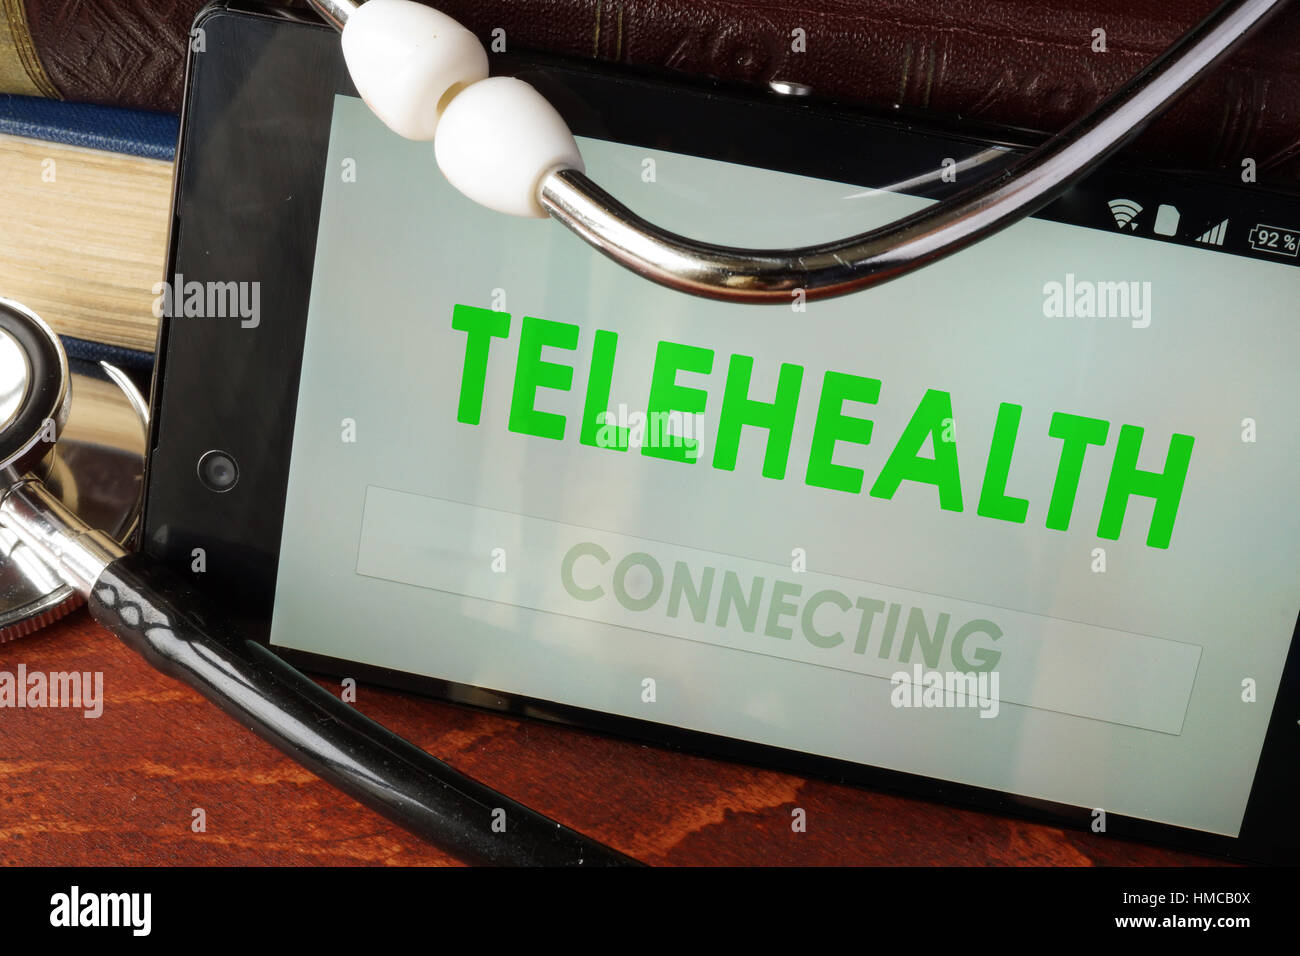 Telehealth apps open in a smartphone and stethoscope. - Stock Image